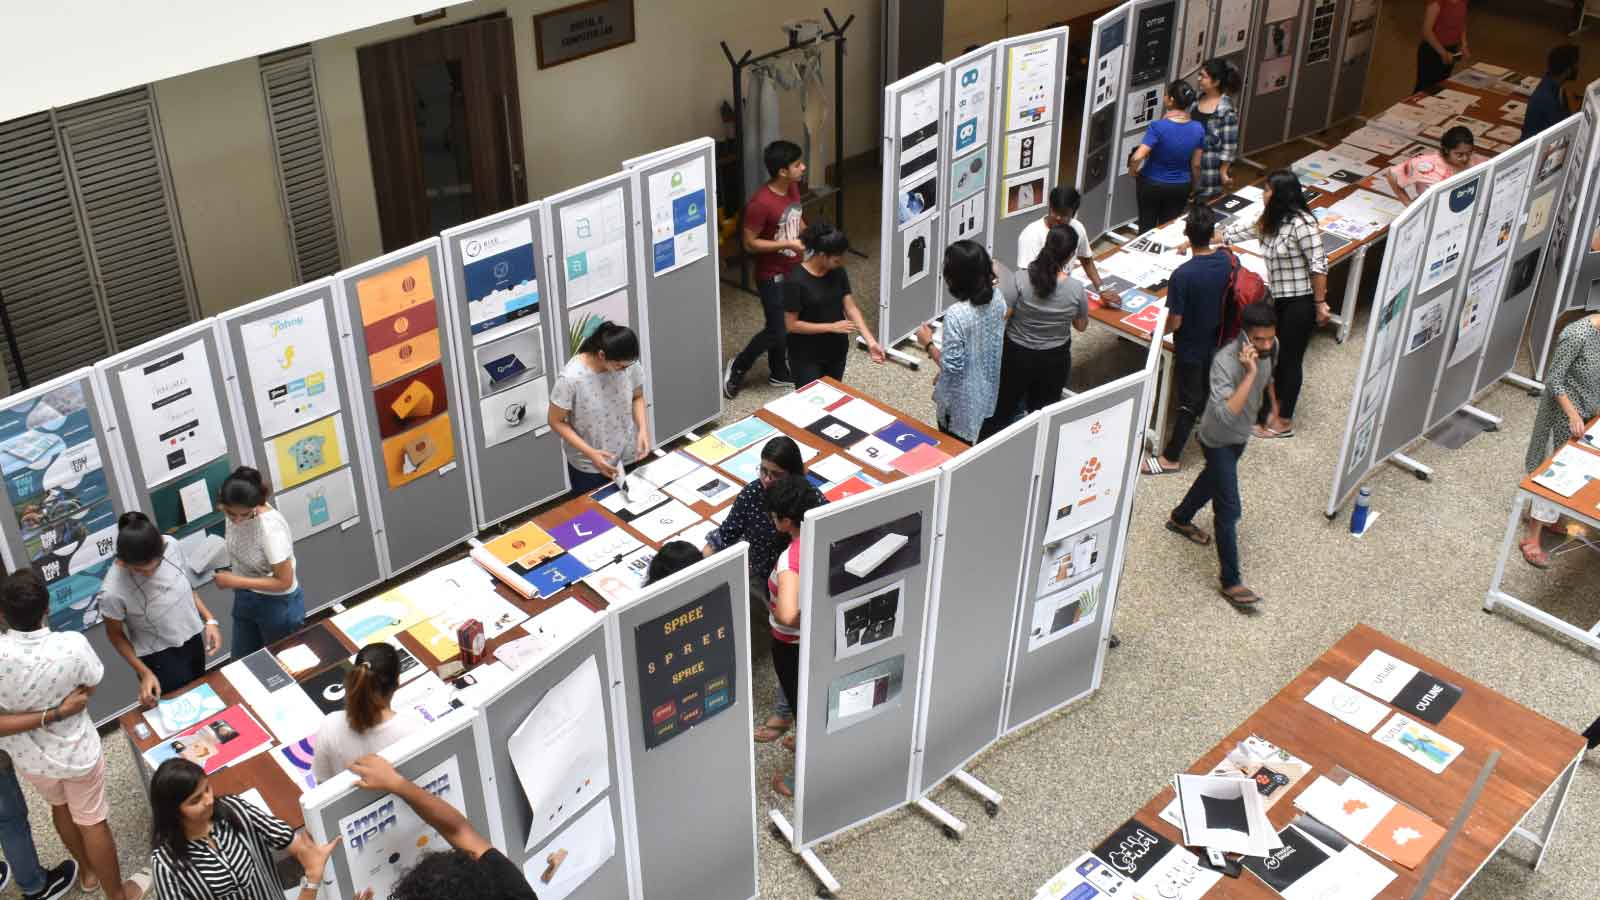 Exhibition on 'Symbol and Corporate I'd Design Image